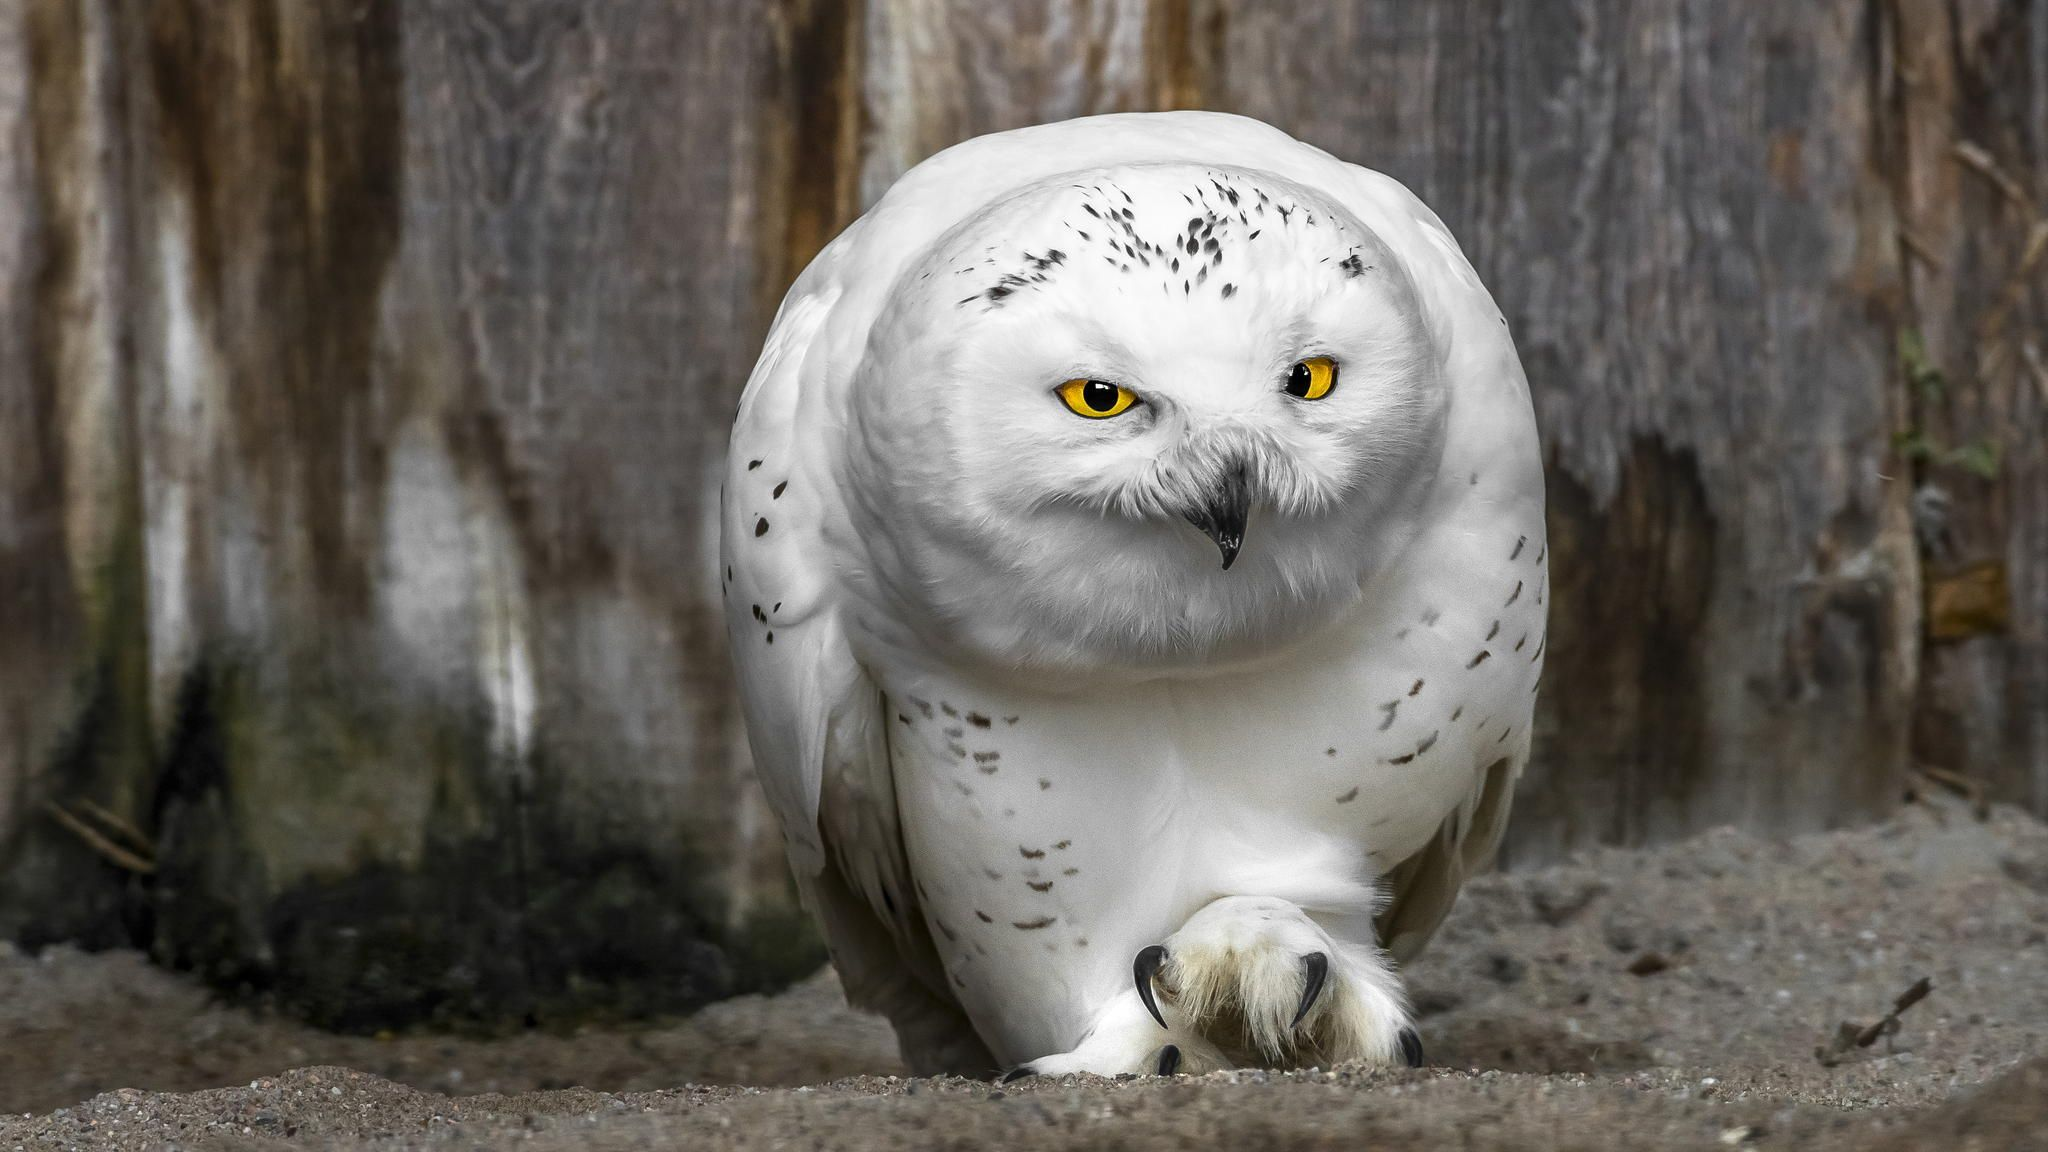 Beautiful White Owl Hd Wallpaper Wallpaperfx 16001000 White